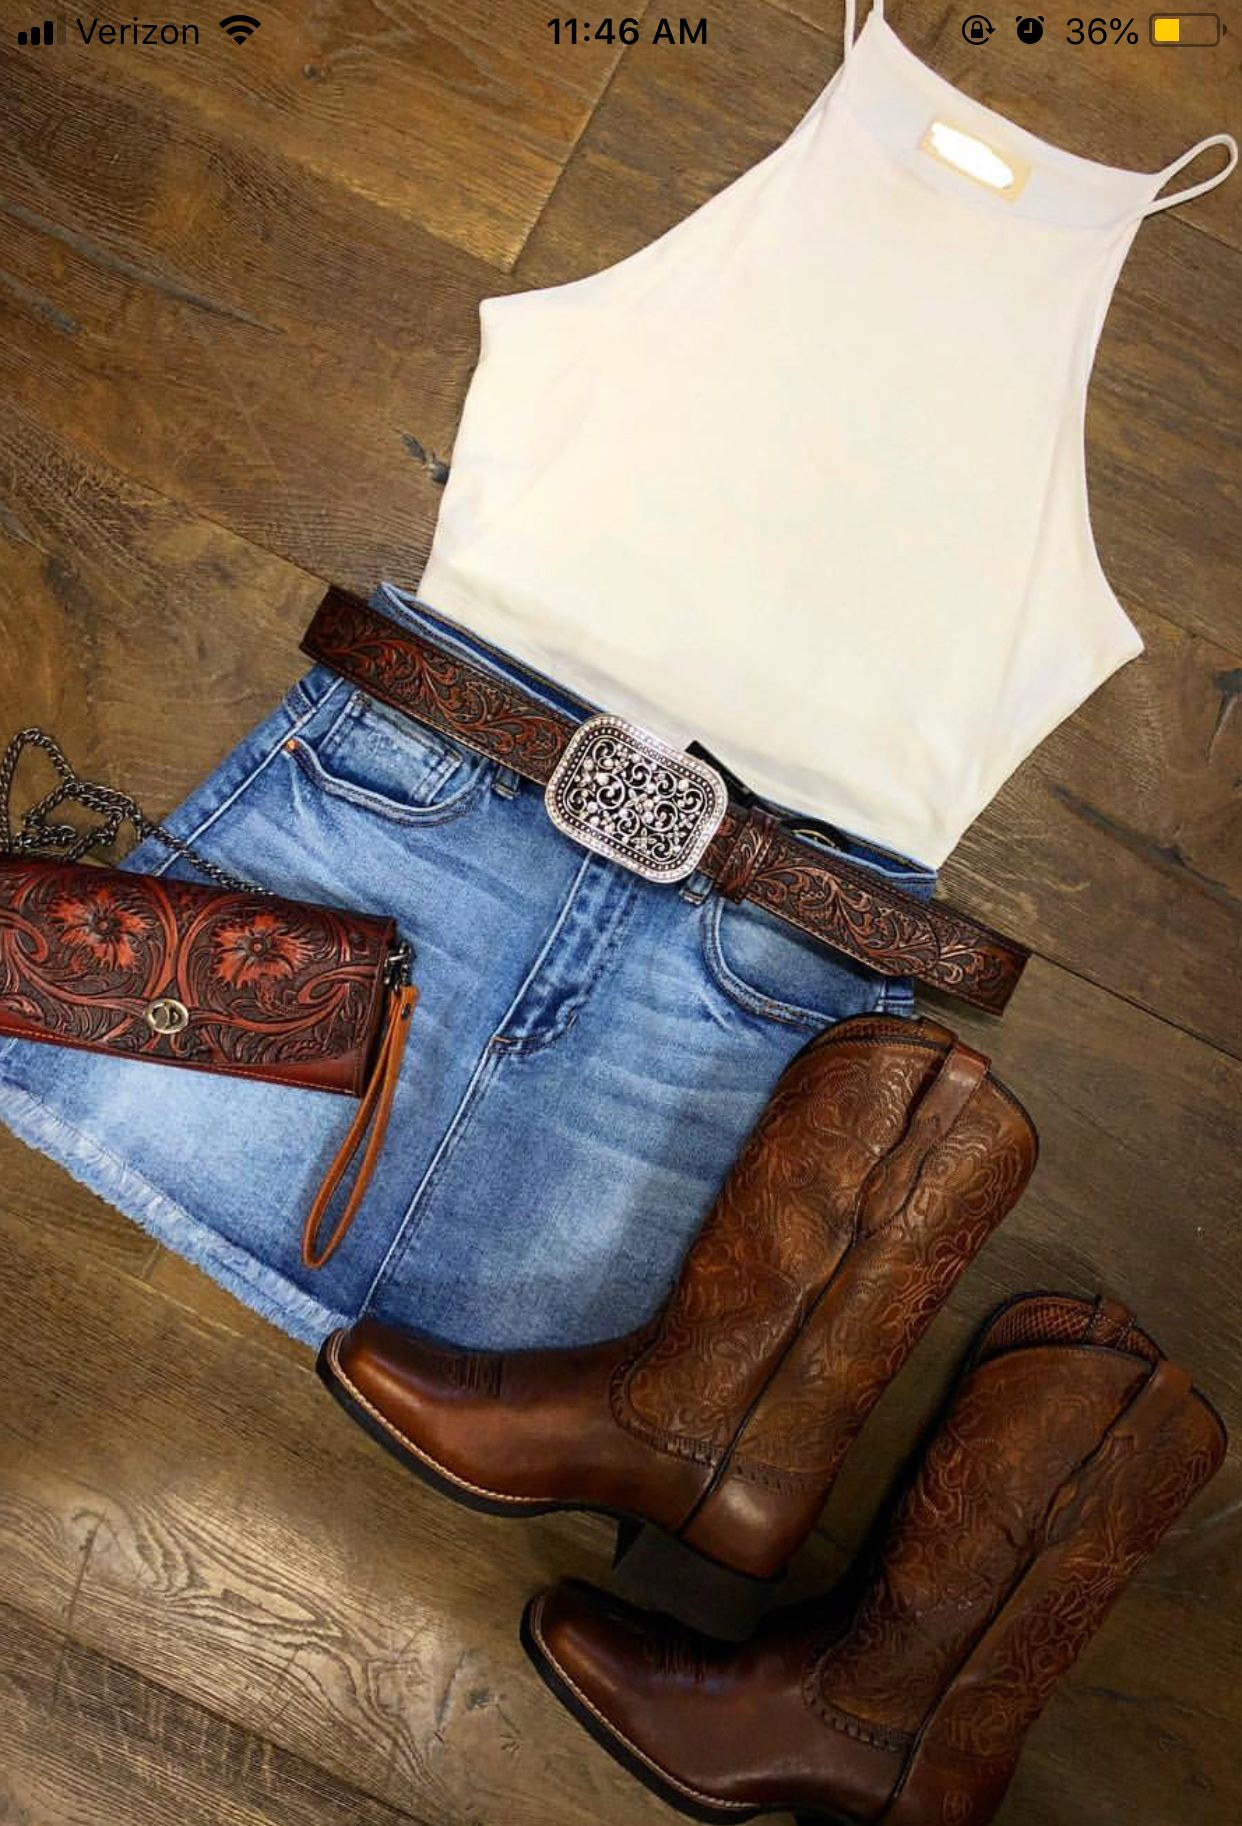 09505563e4 Denim skirt - white blouse and boots   Country in 2019   Outfits ...